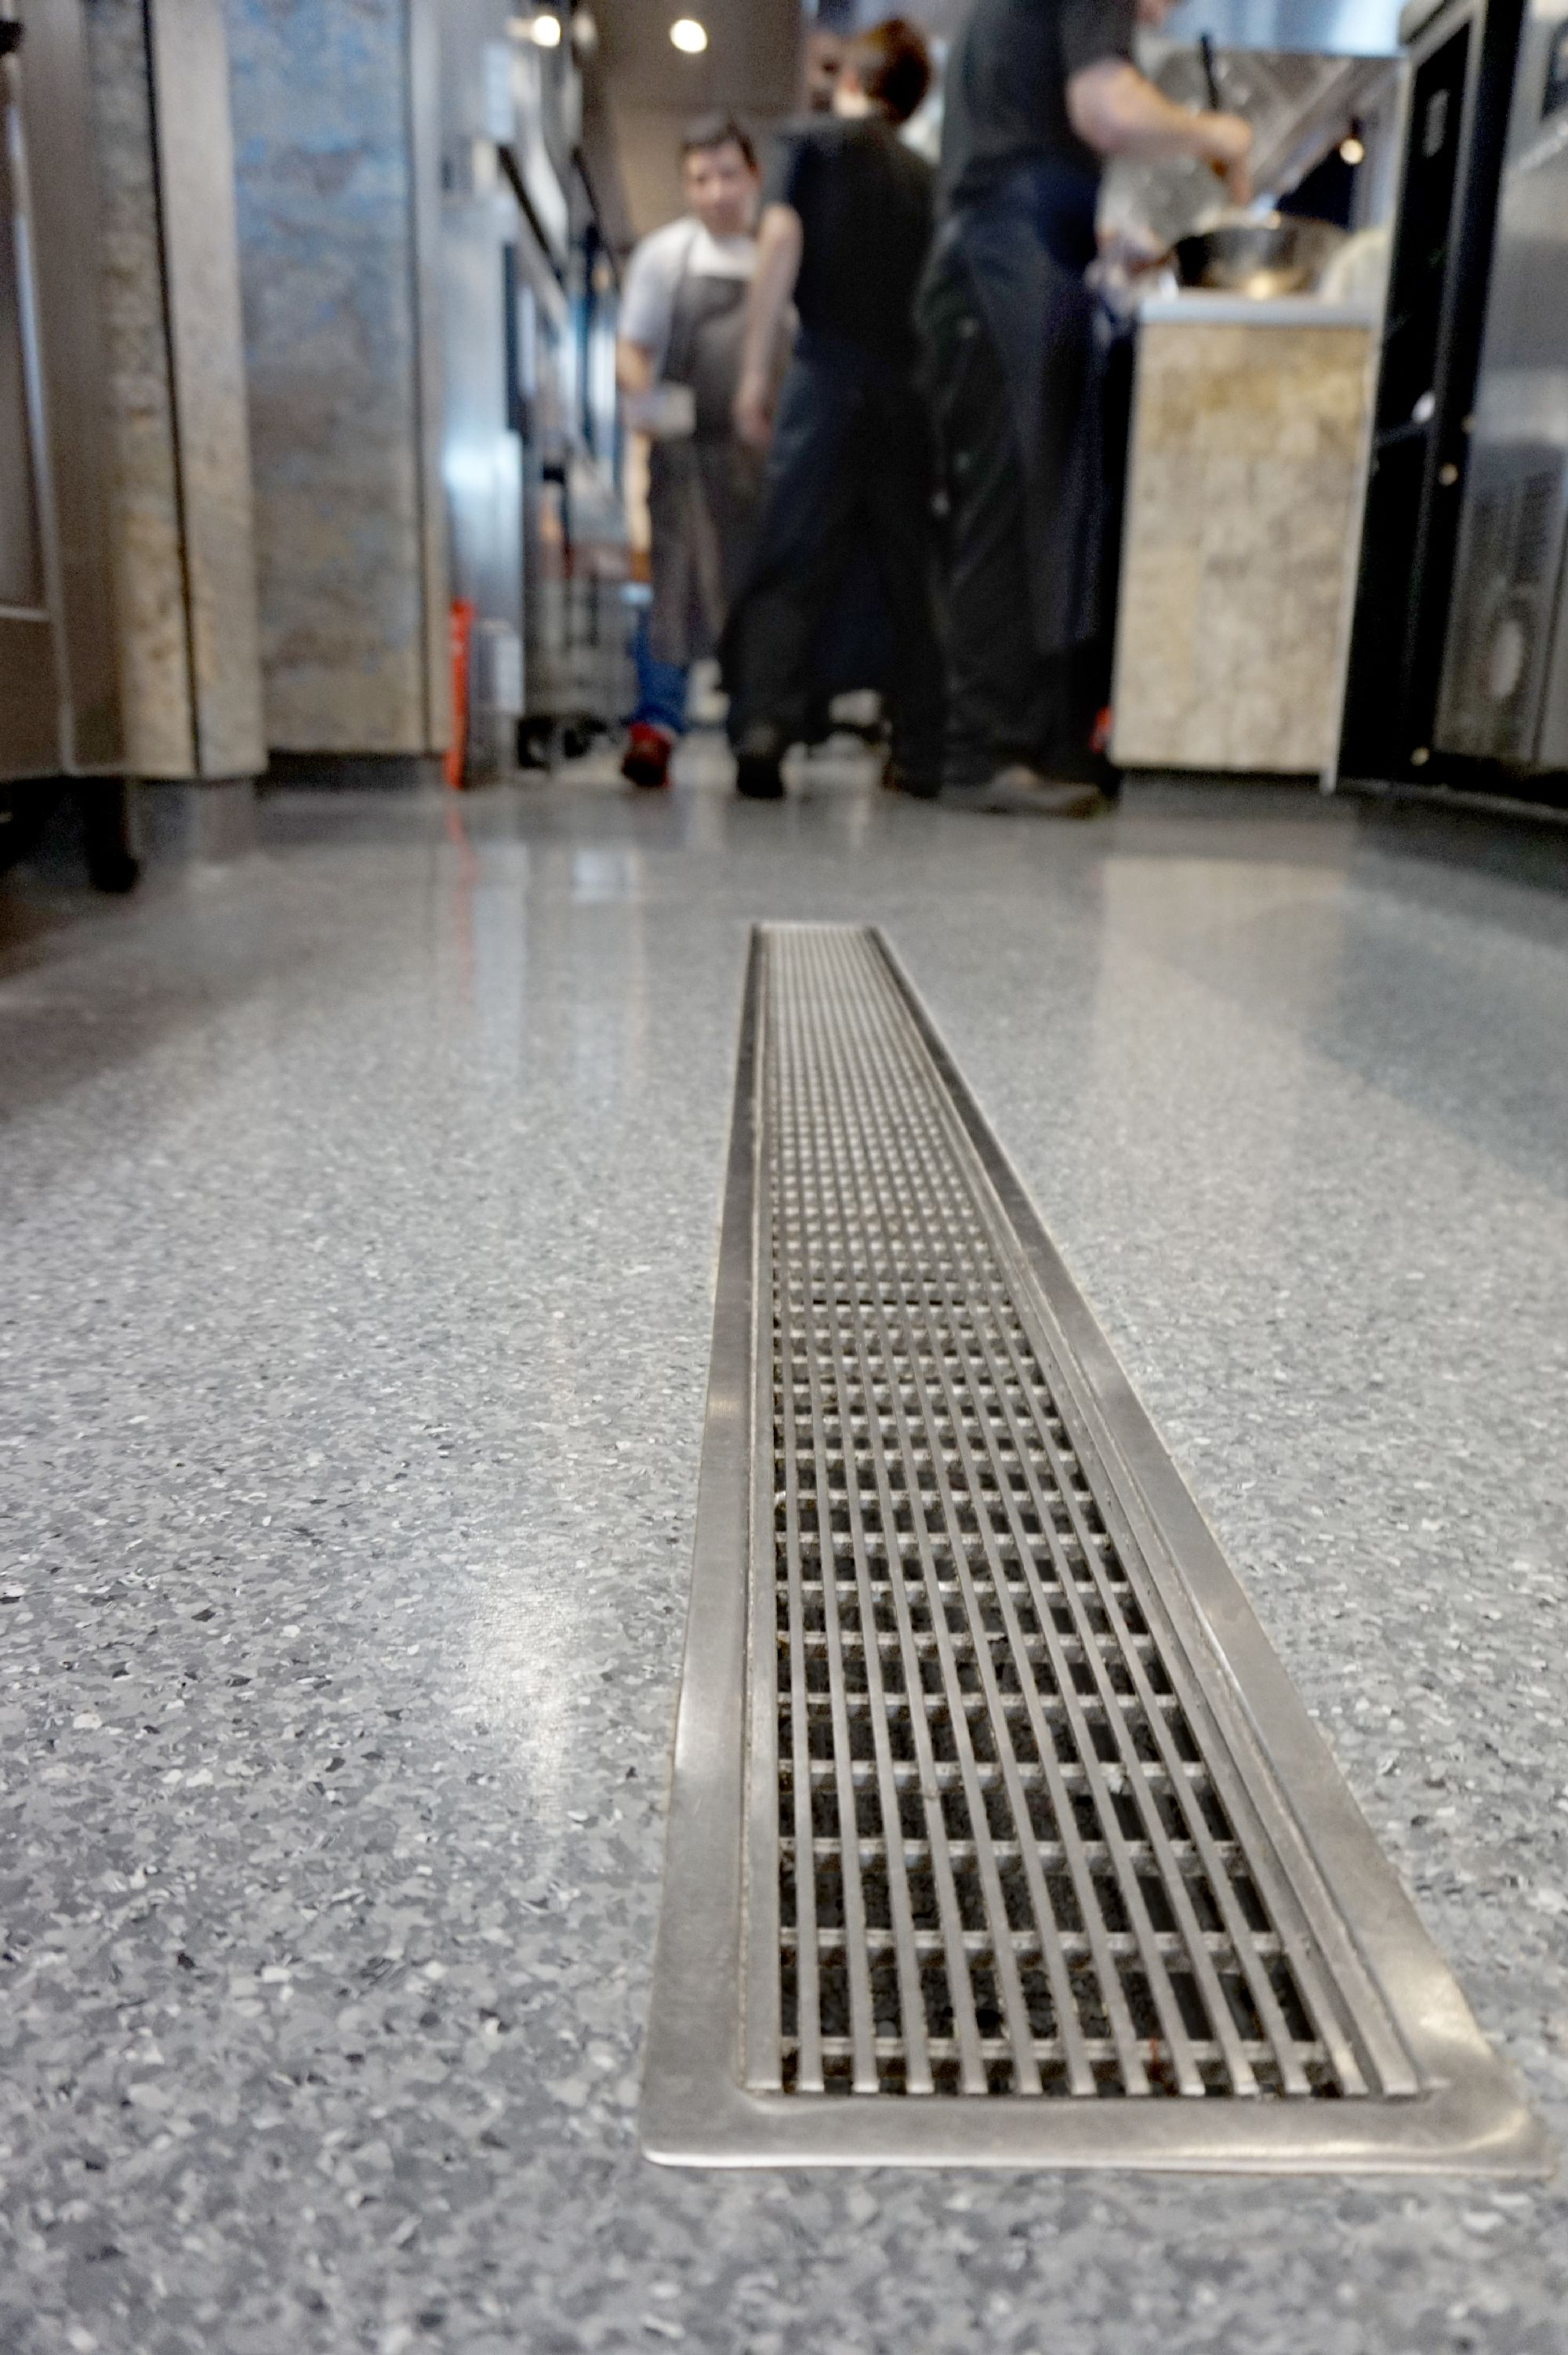 commercial kitchen flooring Allproof VCC channel for commercial kitchen drainage solutions with Wedge Wire R11 rated slip resistant grate